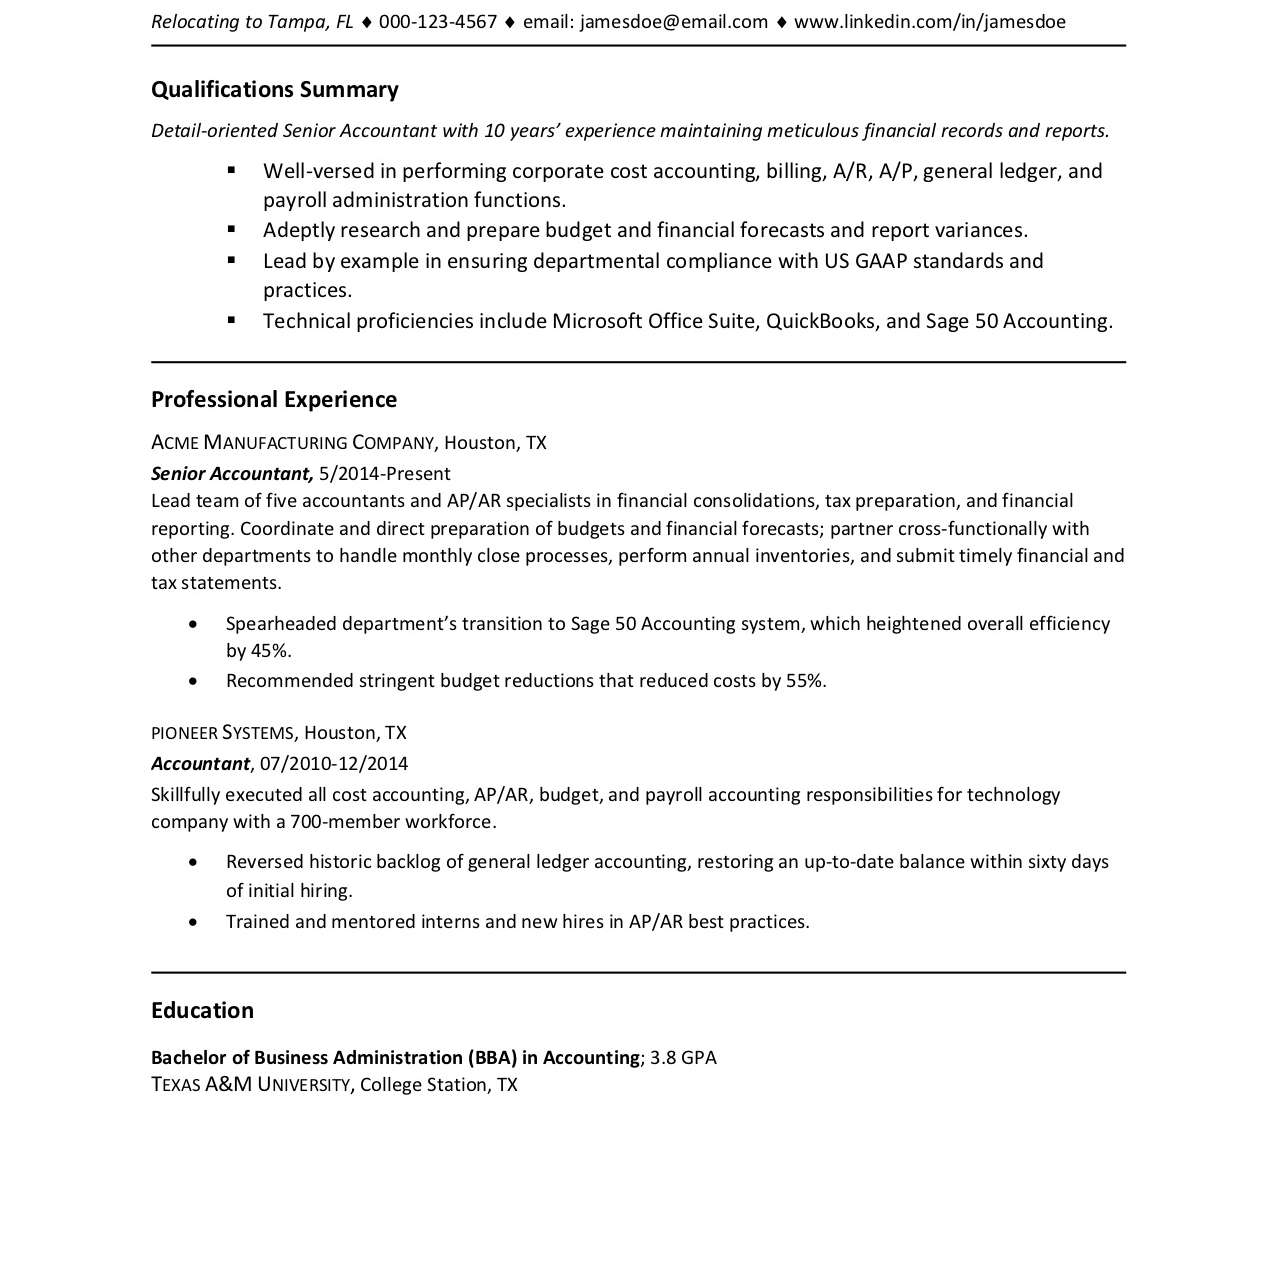 Screenshot of a resume without an address